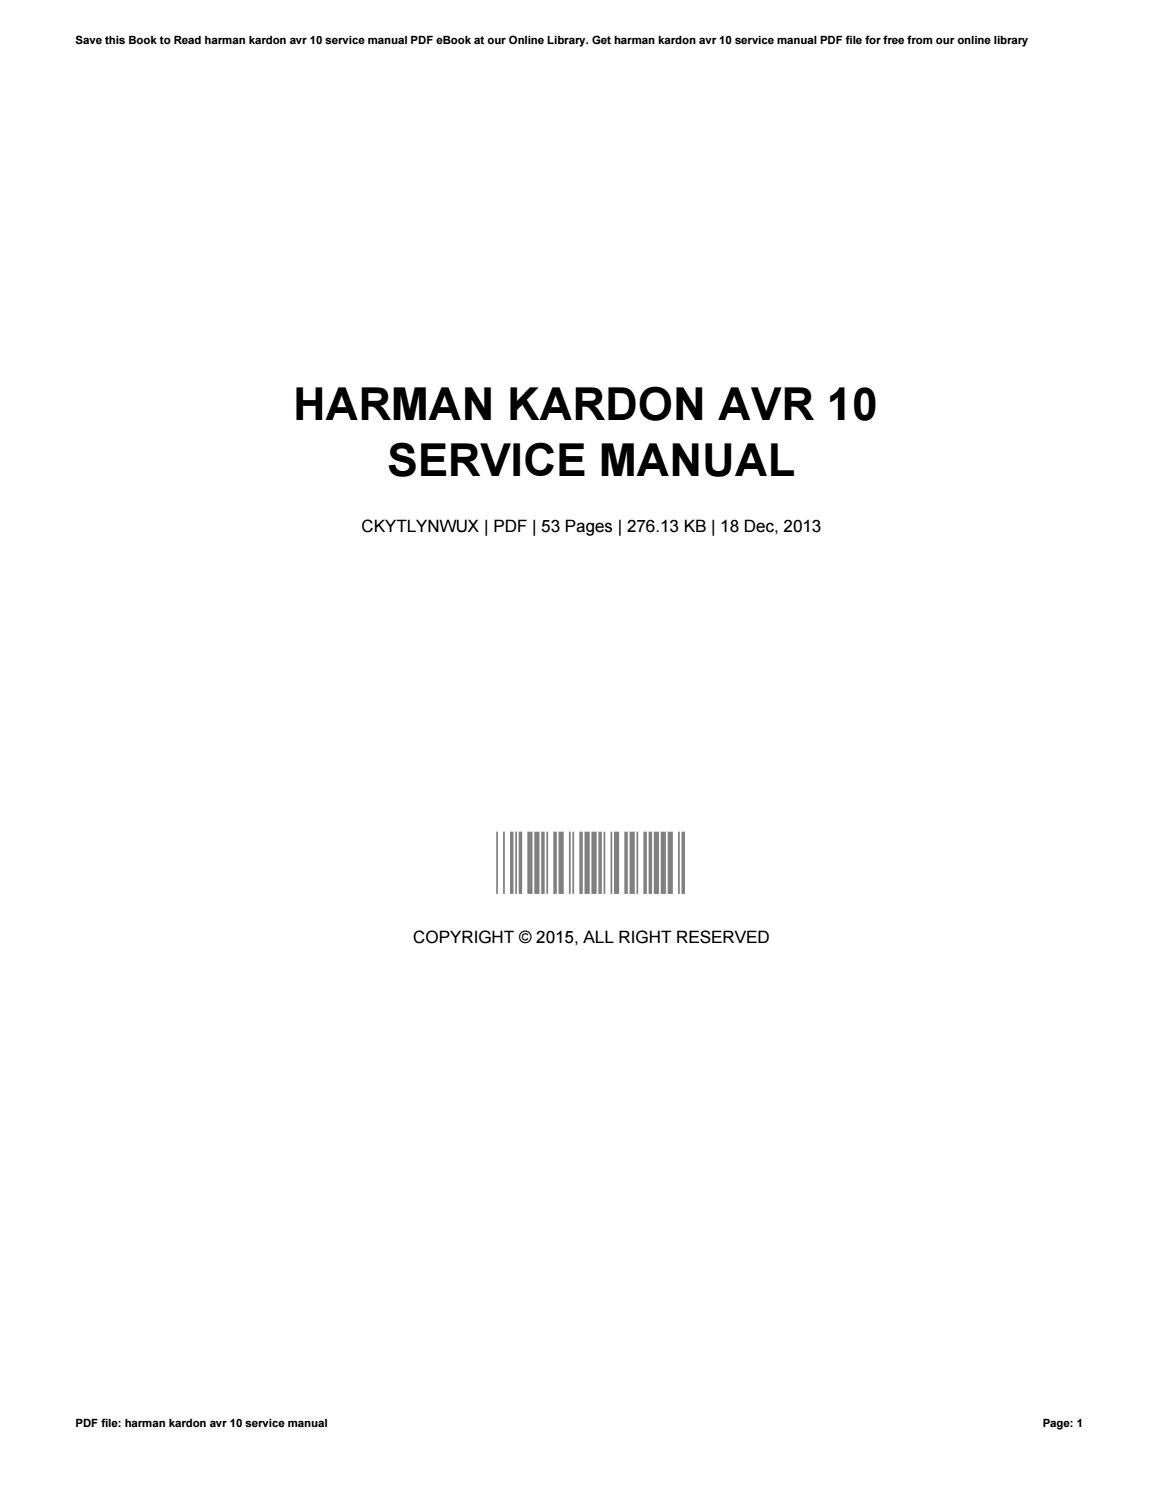 harman kardon avr 10 service manual by tyronesoto3256 issuu rh issuu com Harman Kardon AVR 3700 Harman Kardon AVR 2600 Manual